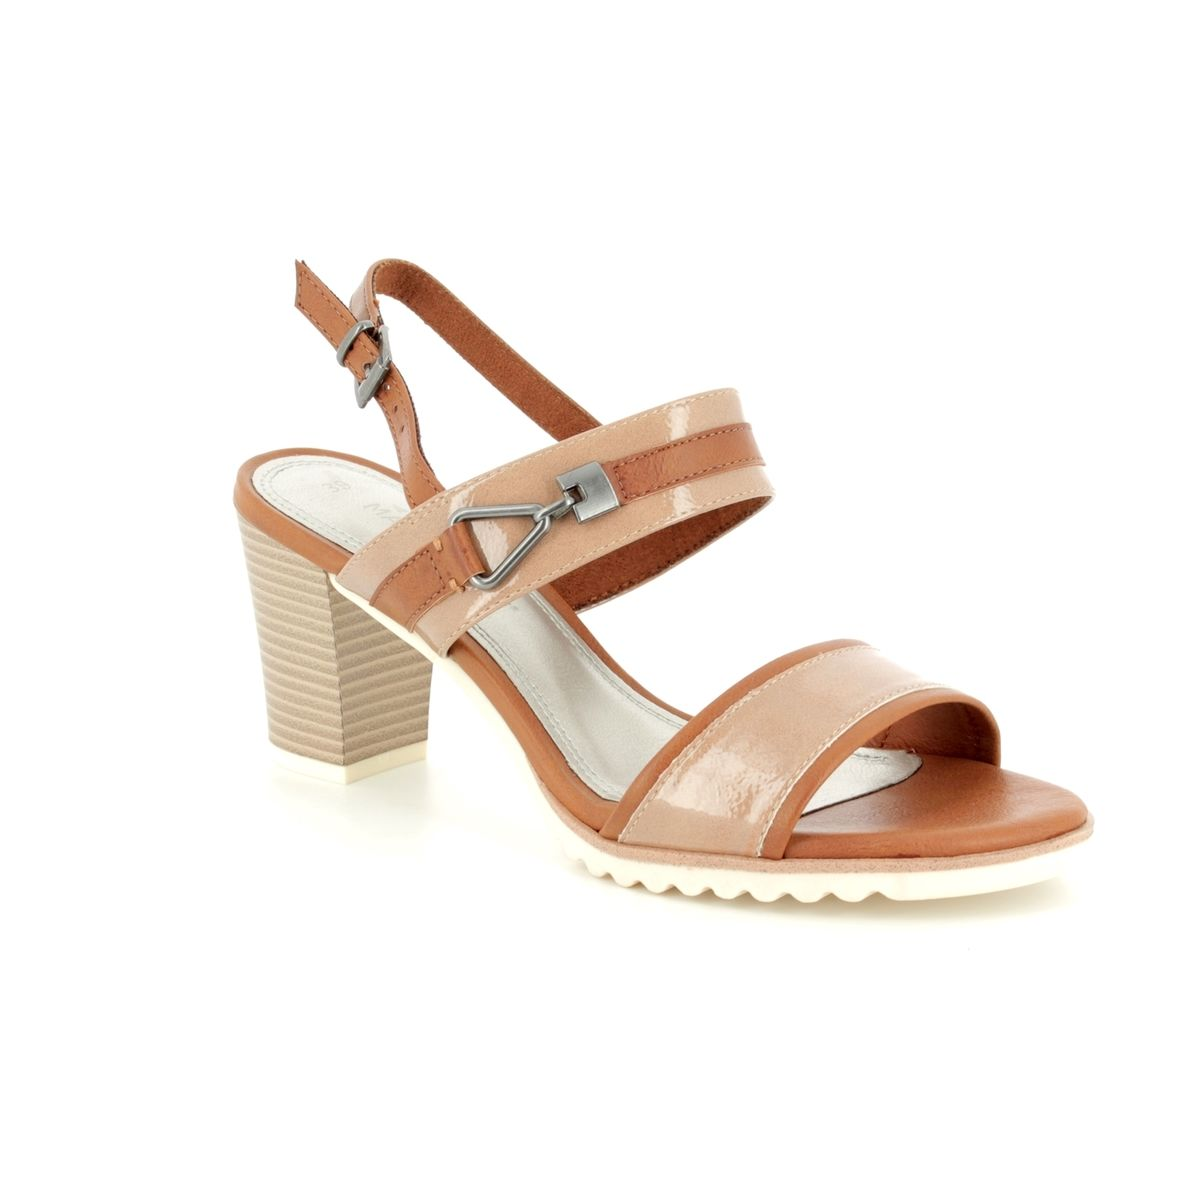 d750492d663 Marco Tozzi Heeled Sandals - Taupe multi - 28704 20 640 PADUMI 81